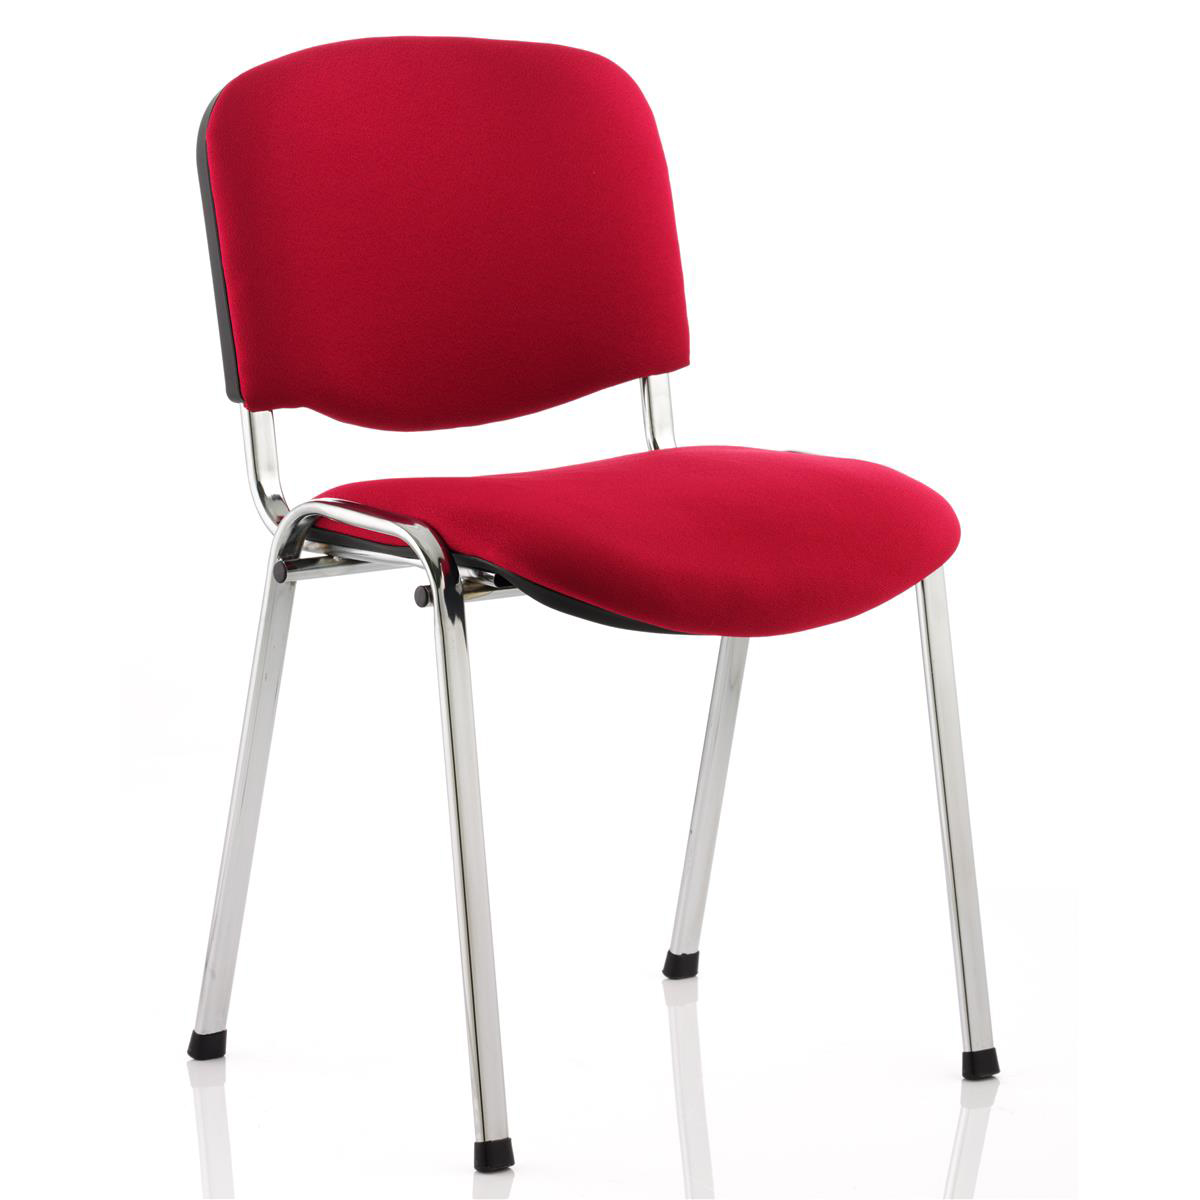 Trexus Stacking Chair Chrome Frame Red 480x420x500mm Ref BR000299